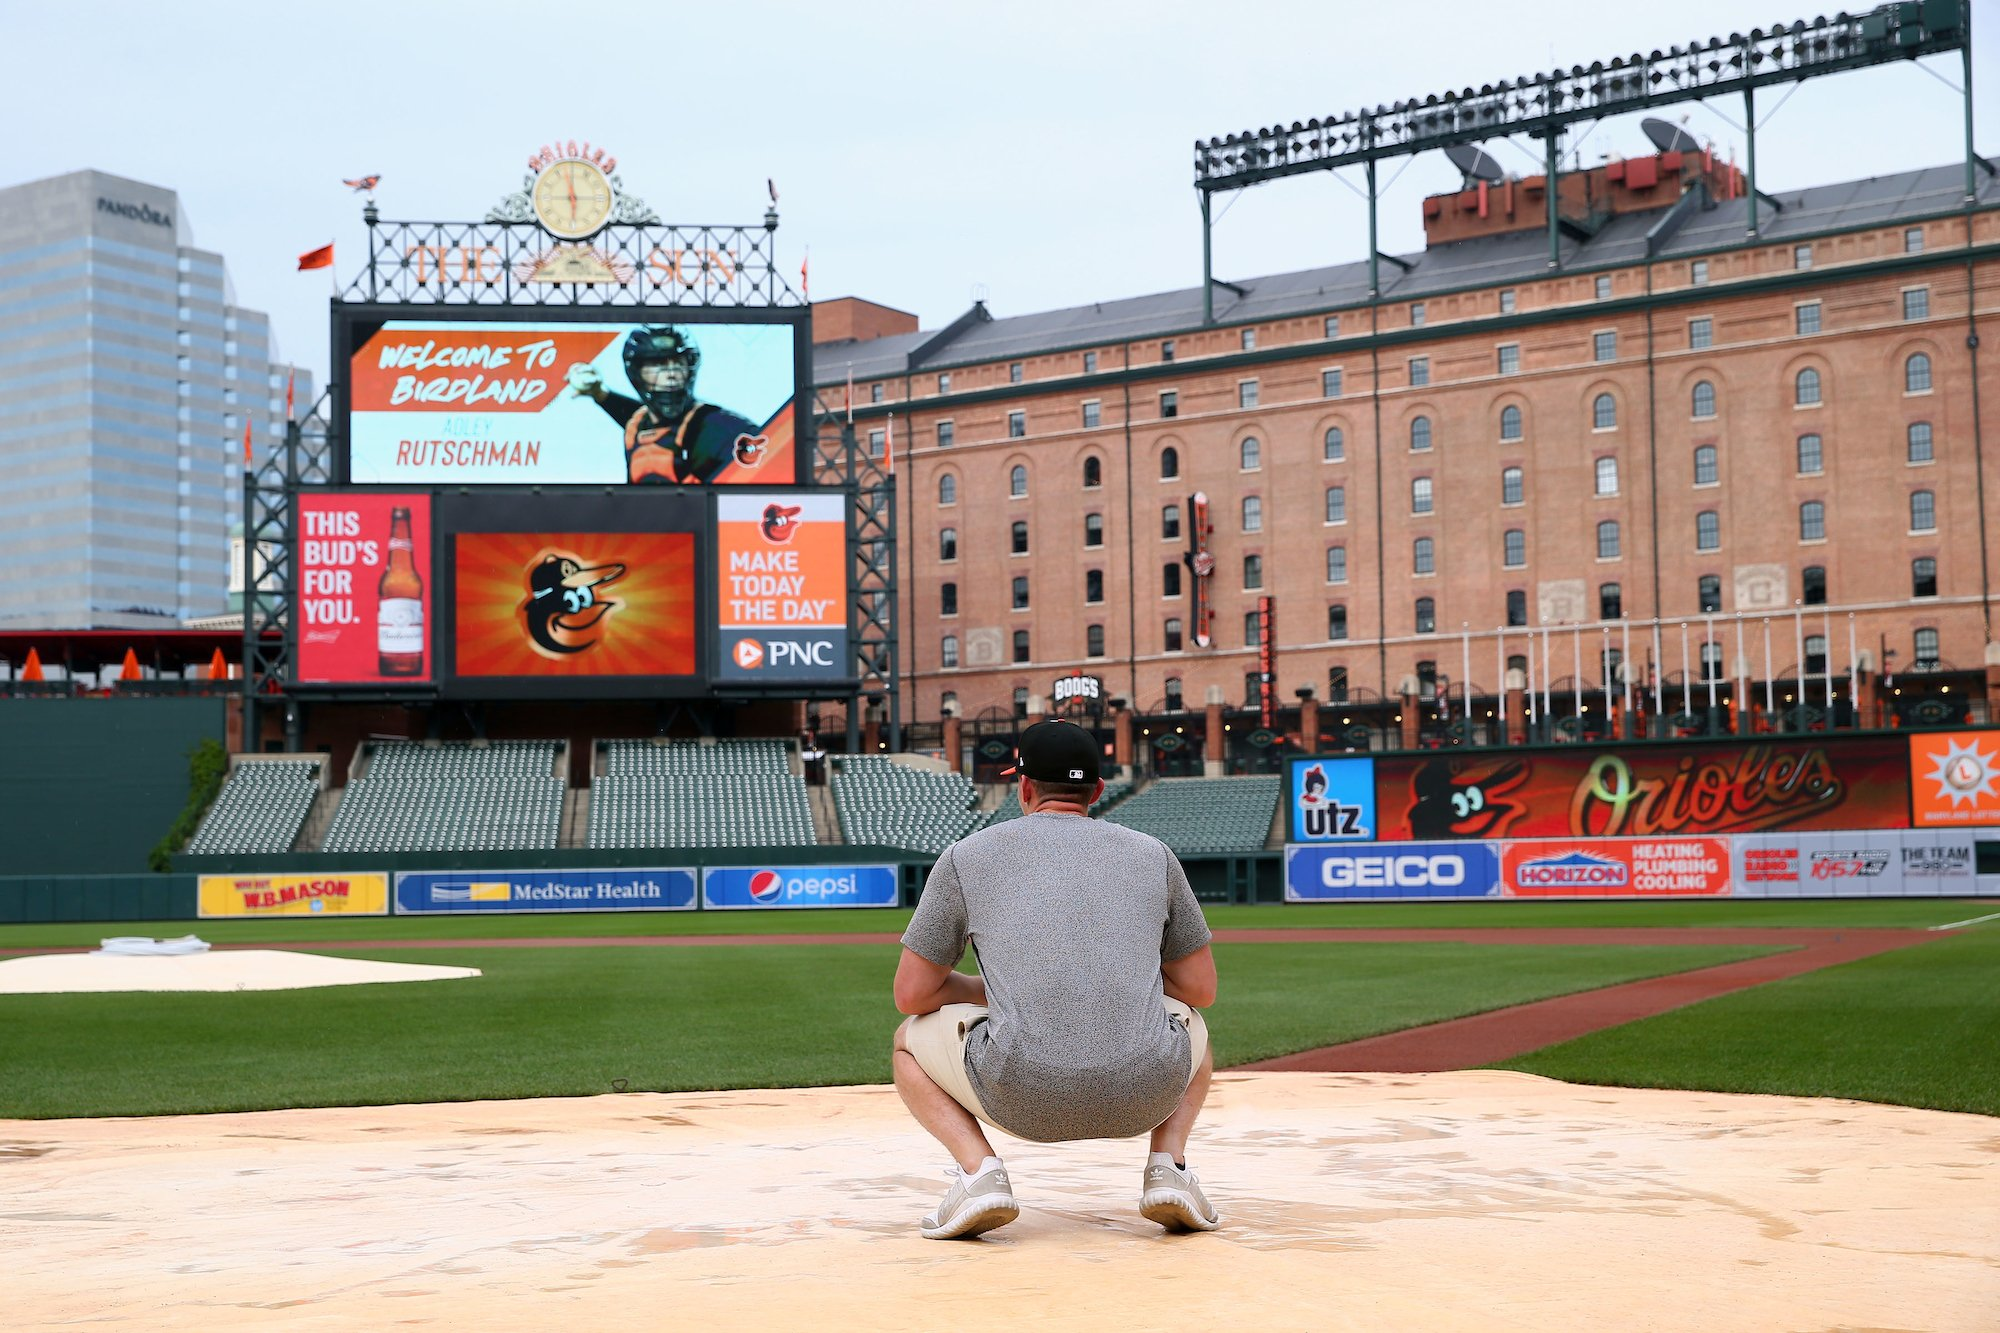 Adley Rutschman Signs with Orioles To Be Introduced at Hangout Night